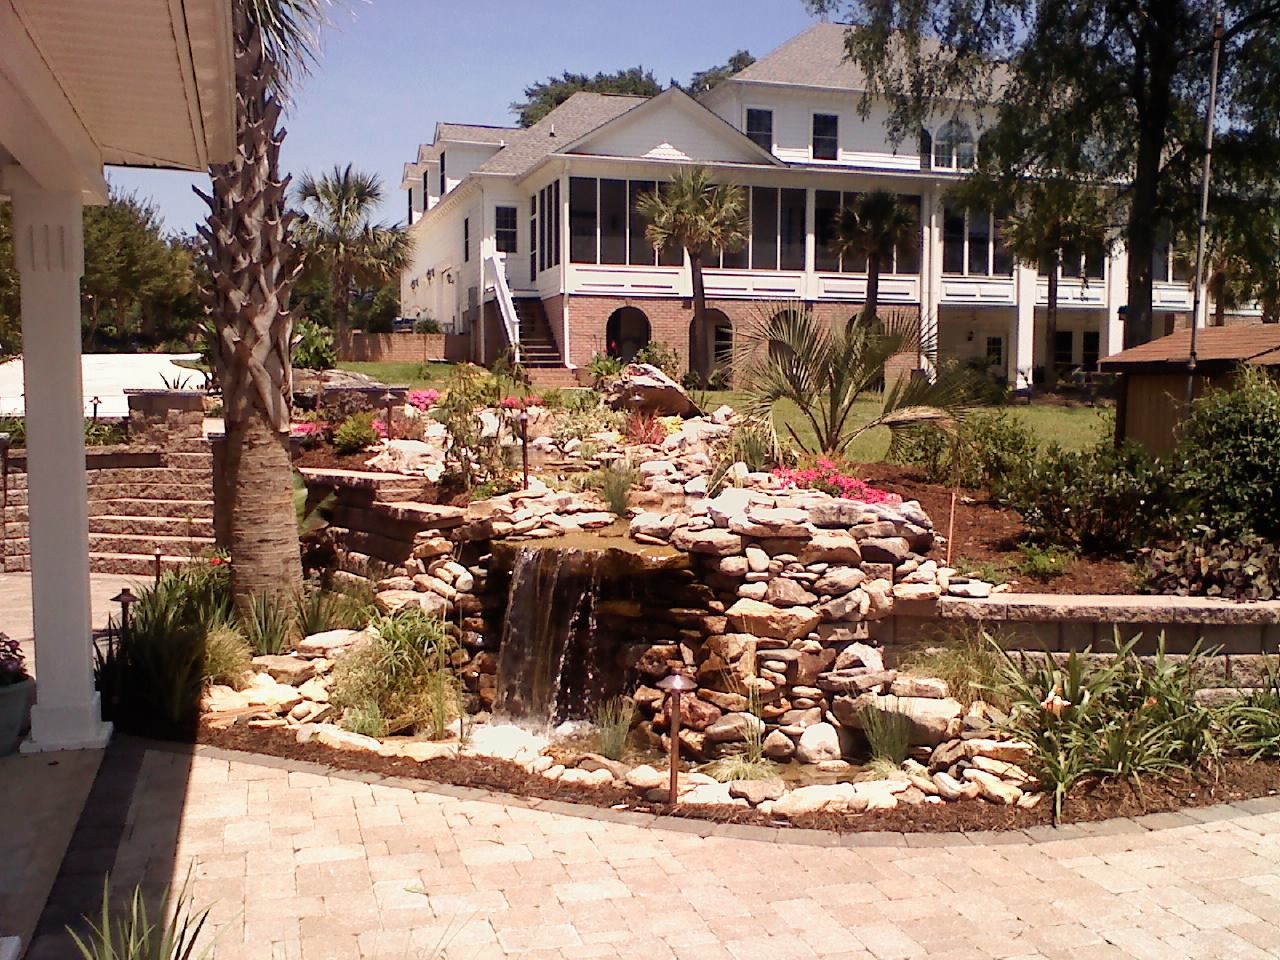 Landscaping lexington sc outdoor goods for Landscaping rocks columbia sc